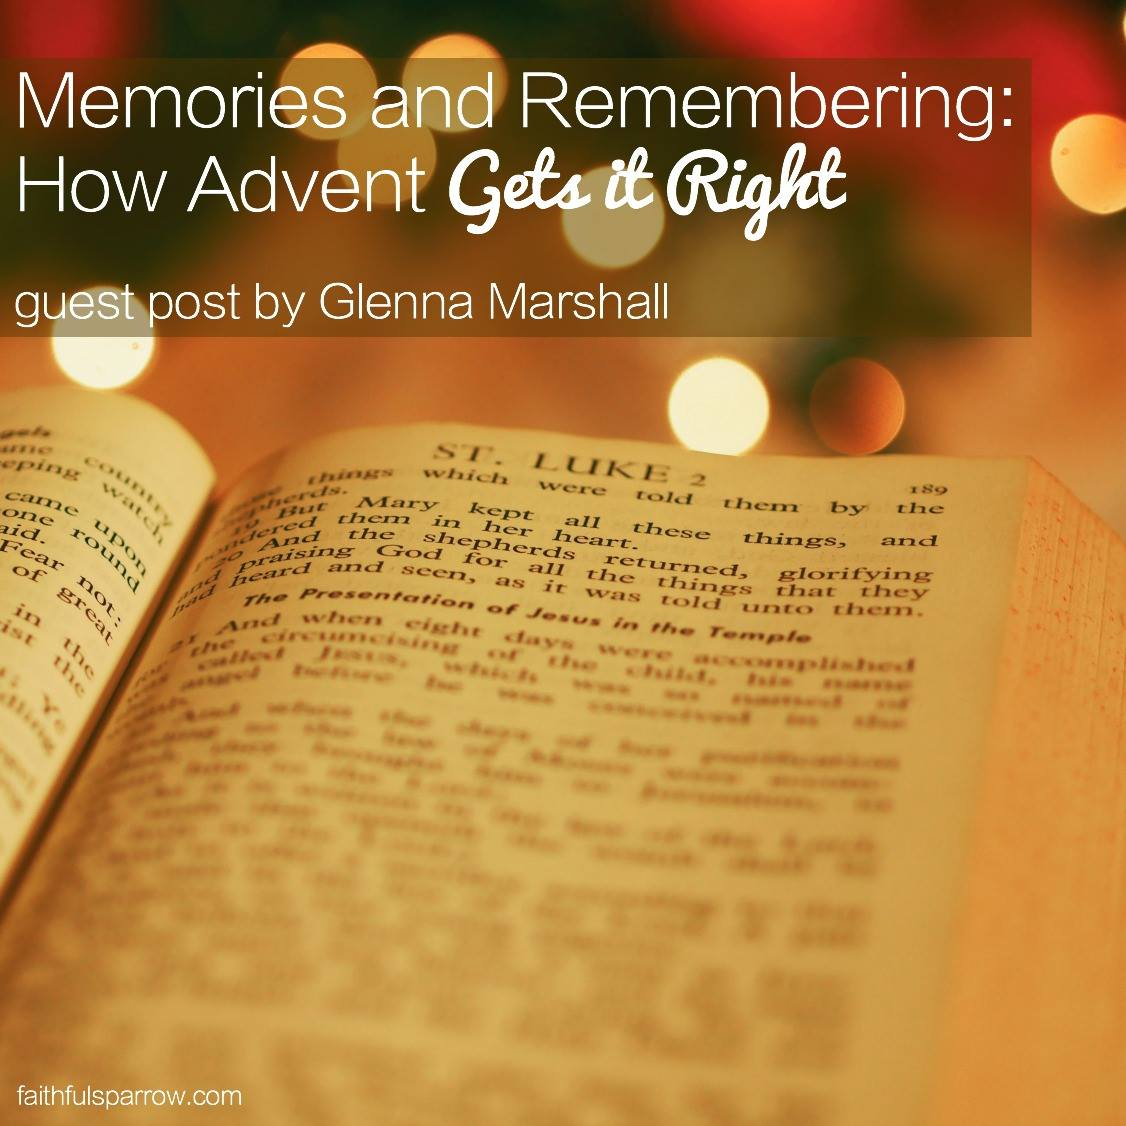 I only remember a few of the gifts I received growing up, but I can sink down into the Christmases of my childhood with one anchoring memory: Advent.